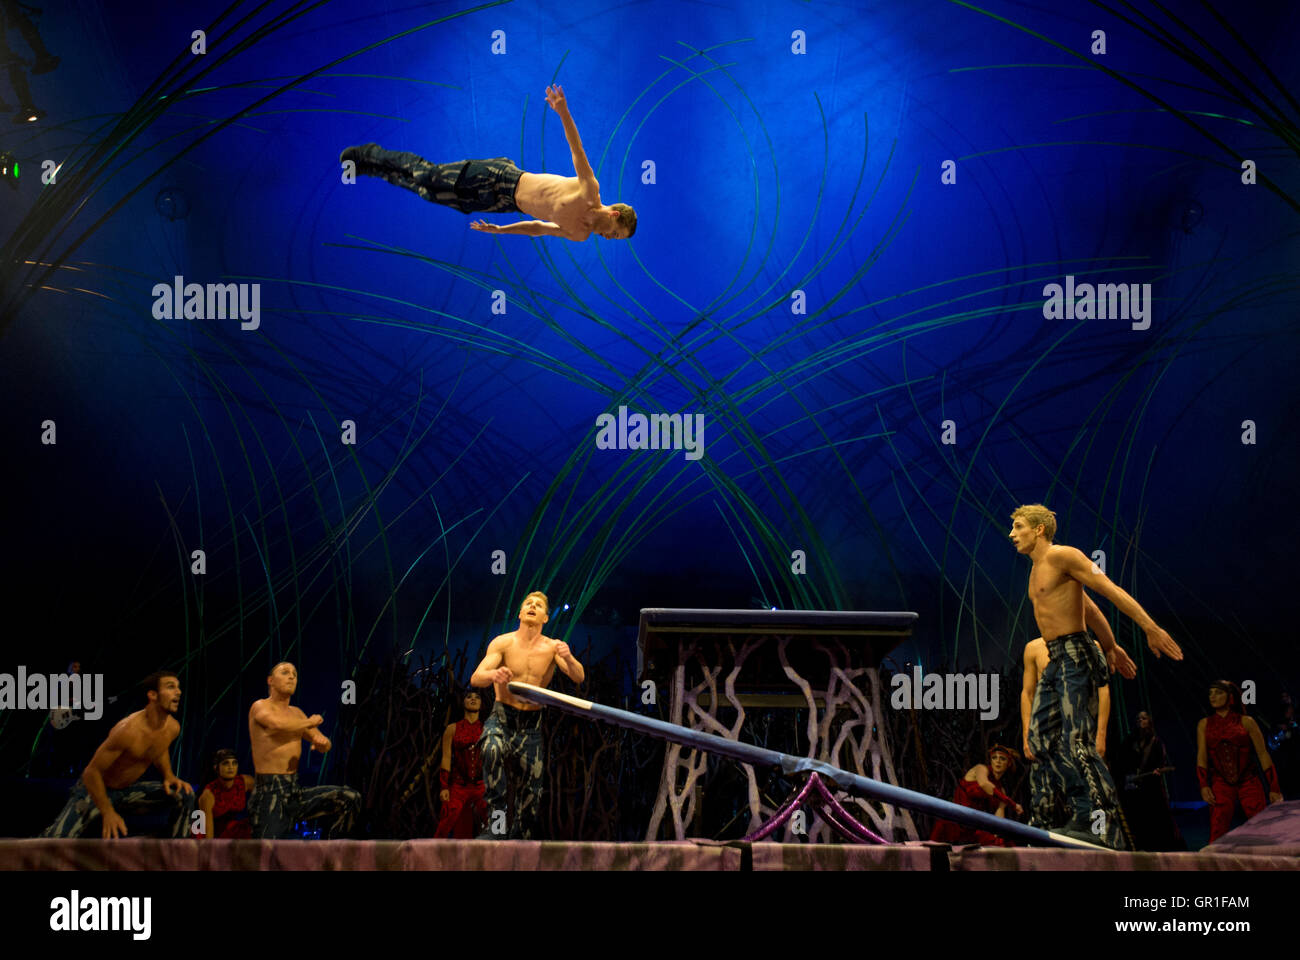 Manchester, UK. 6th September 2016. The dress rehearsal / preview of the Cirque du Soleil production 'Amaluna' - Stock Image